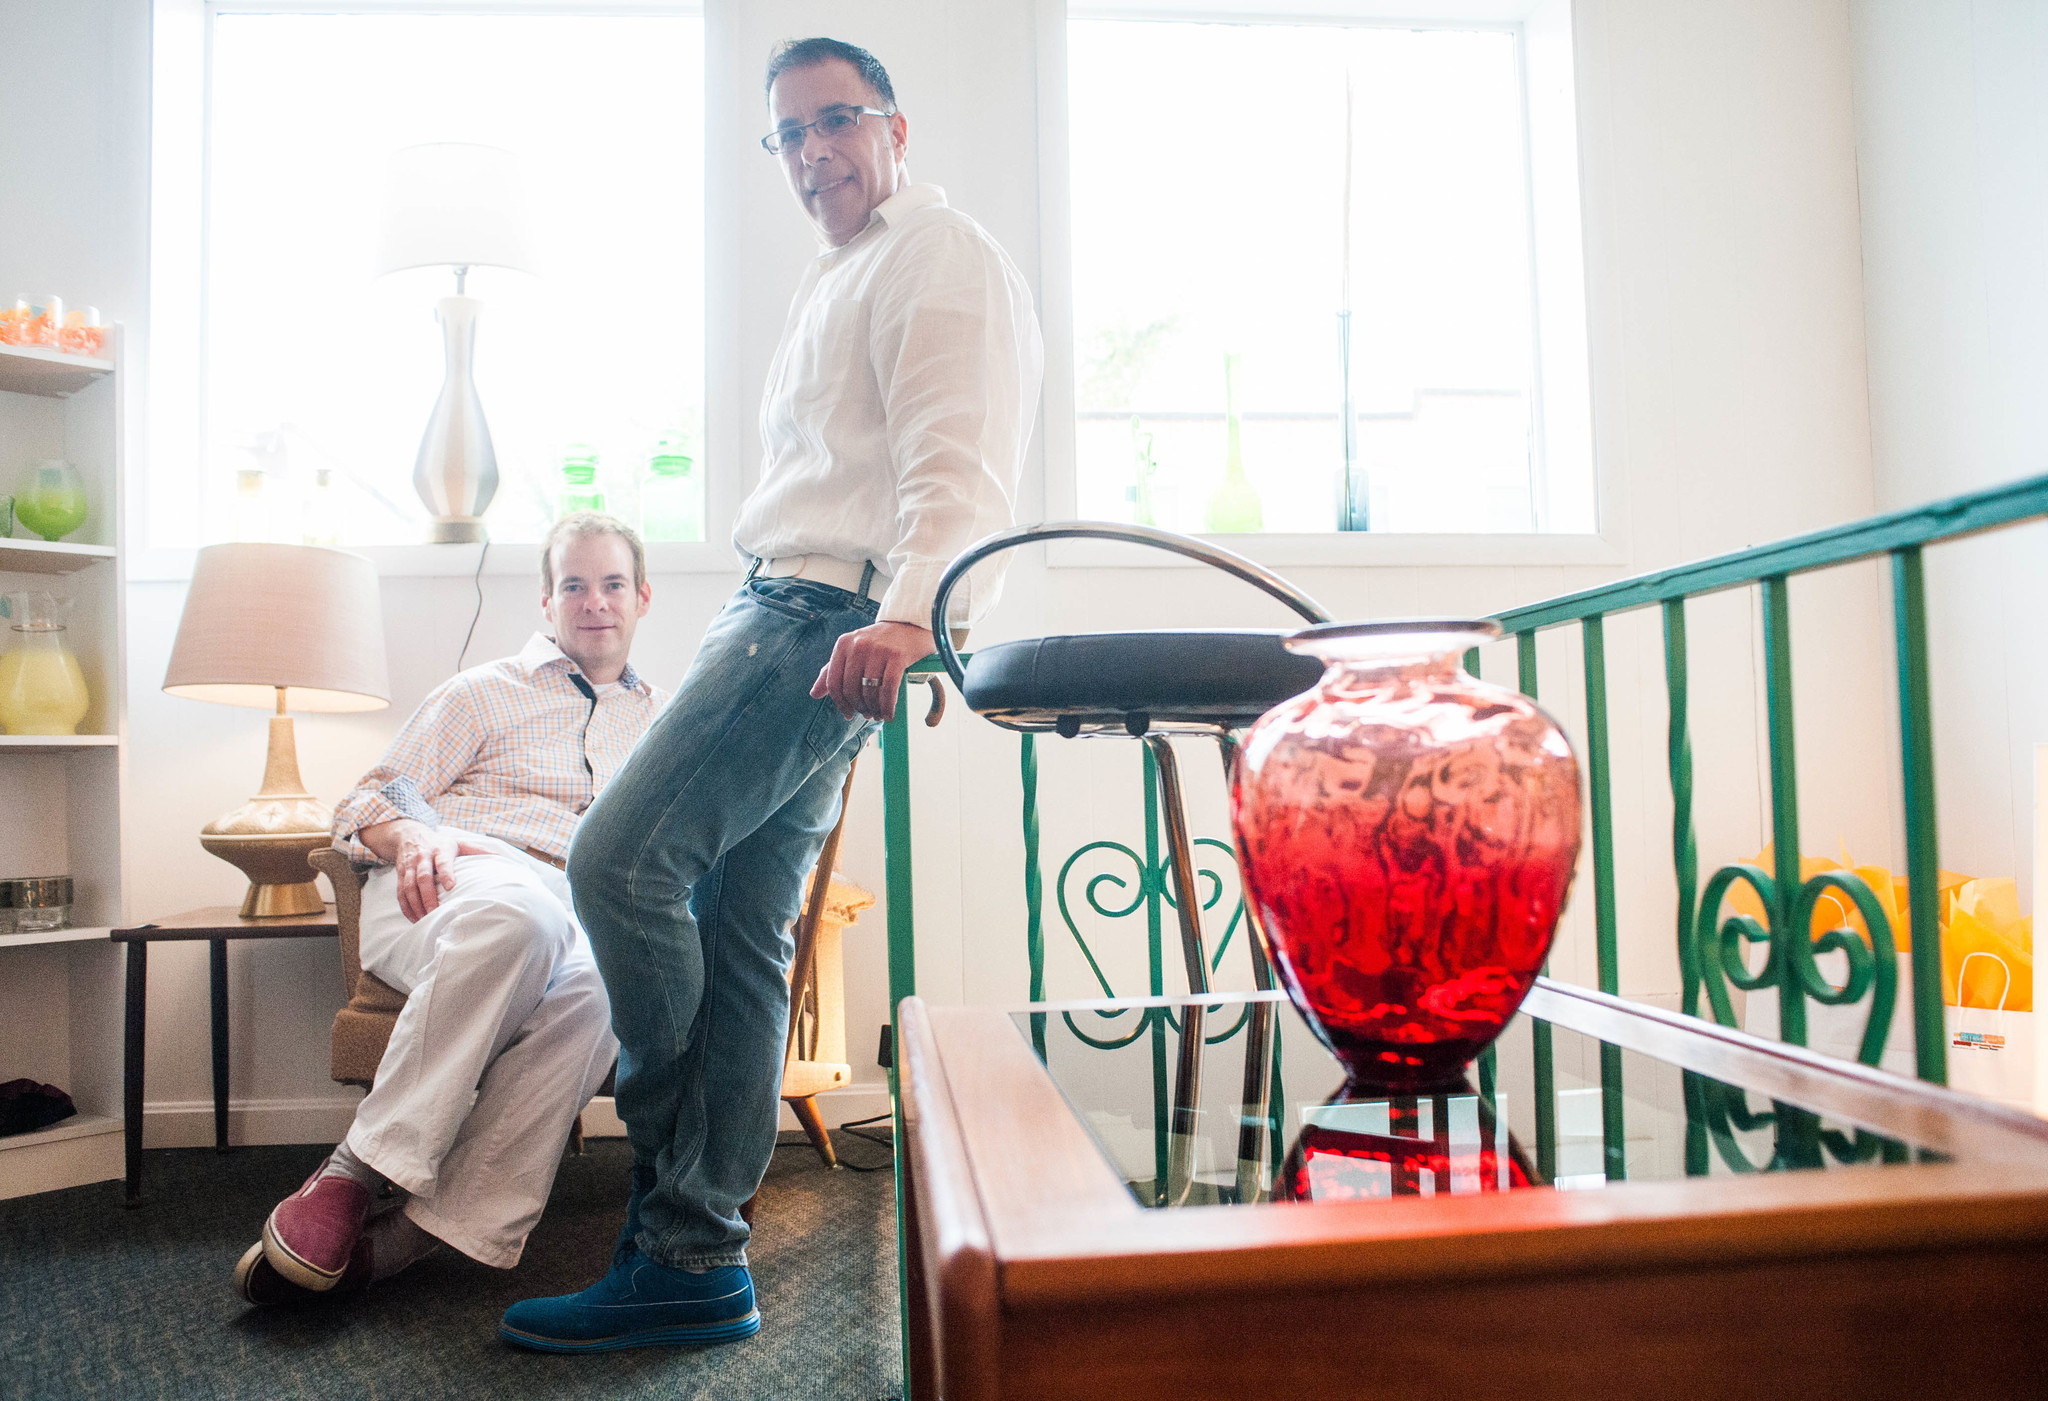 RetroFurn brings  60s and  70s flair back to Baltimore with midcentury  modern furnishings   Baltimore Sun. RetroFurn brings  60s and  70s flair back to Baltimore with